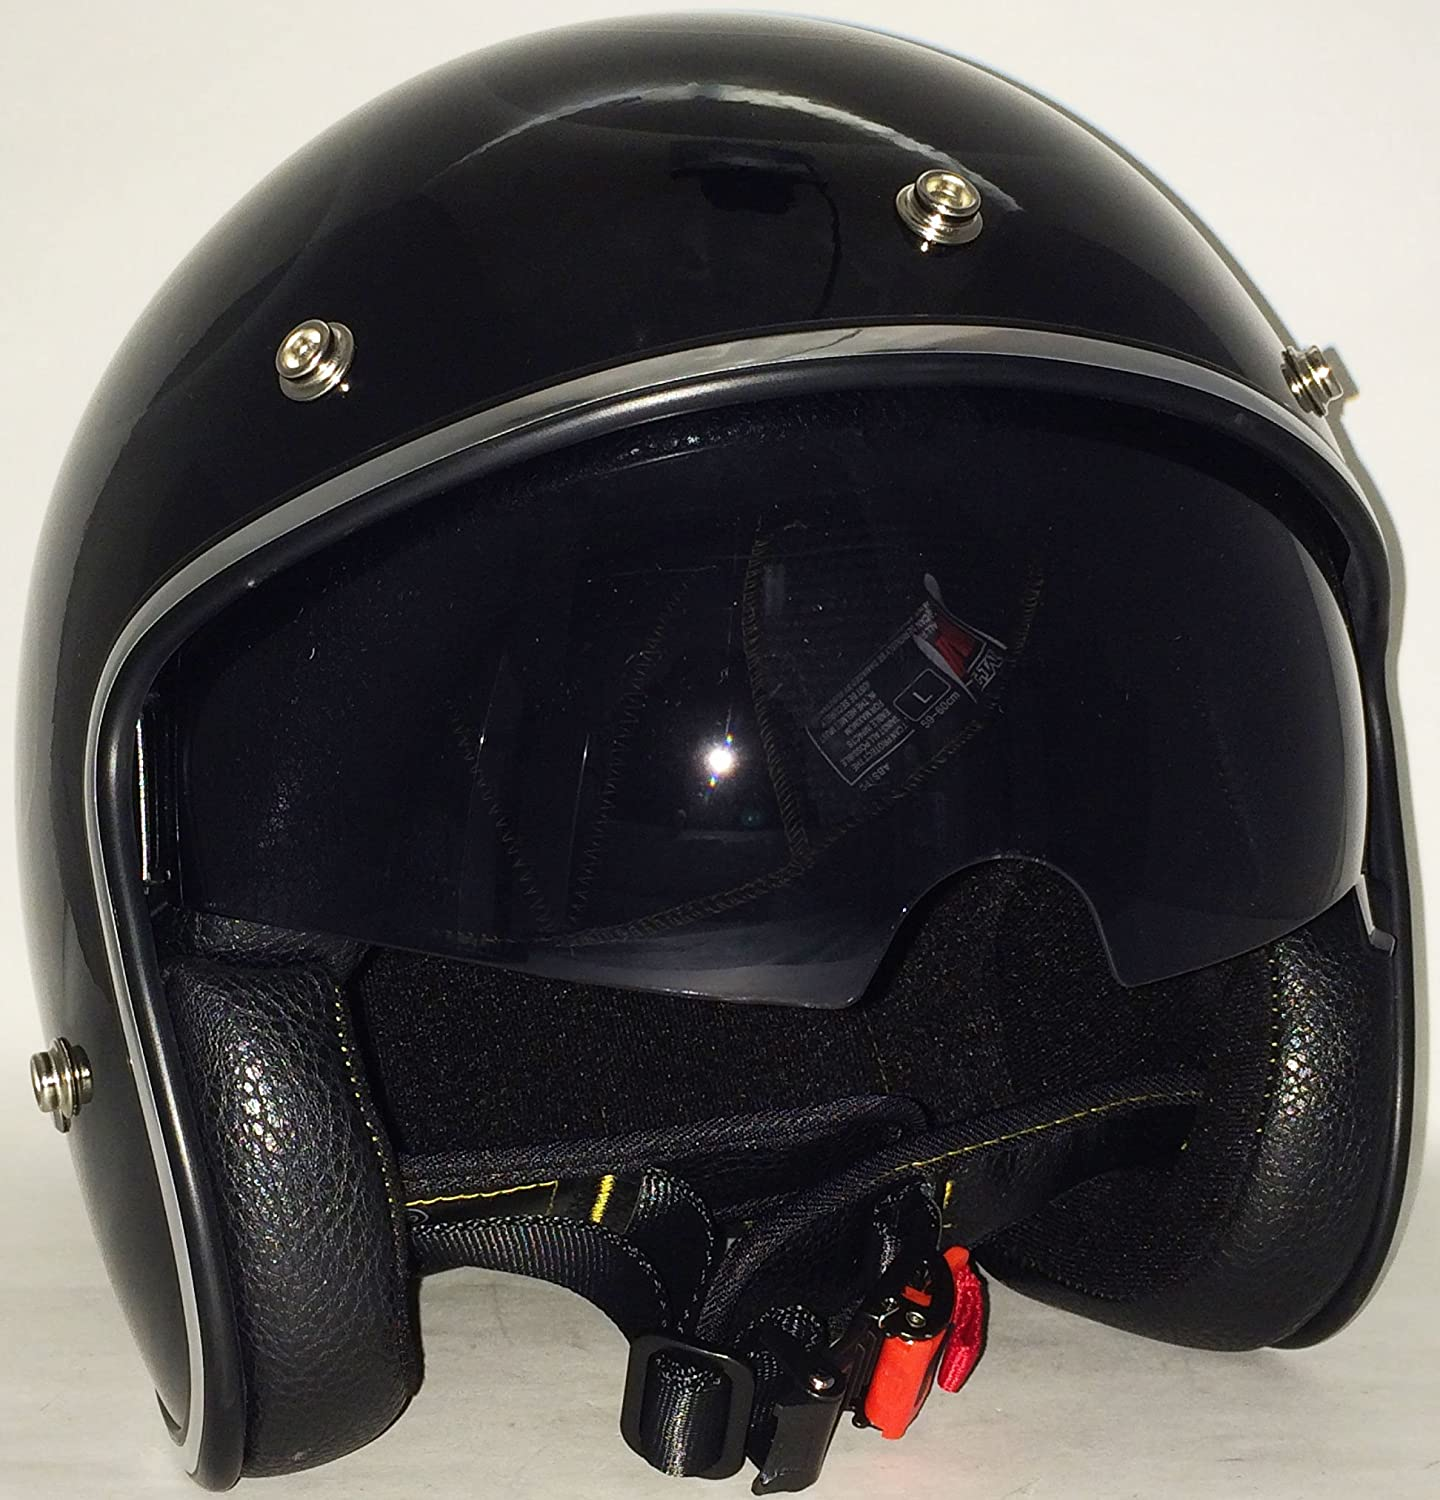 Amazon.es: NUEVO MT Le Mans VS Perfil Bajo Abierto Boquillas Ceñida Chopper Bobber personalizados Casco Moto Bicicleta City Roller Accidente